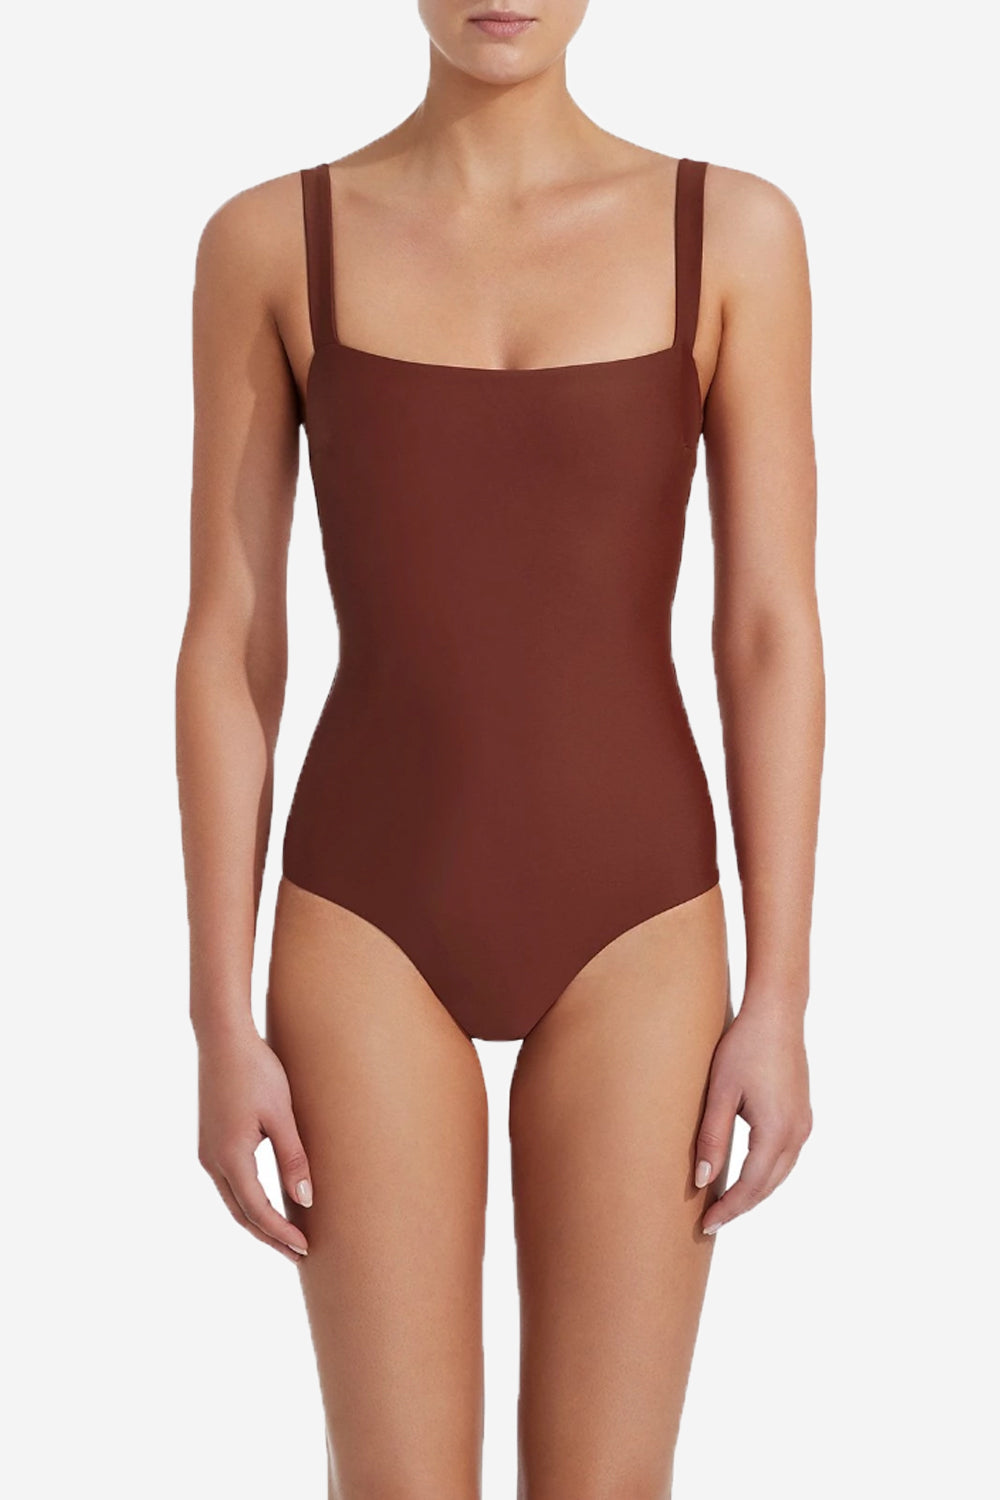 Square Rust Maillot